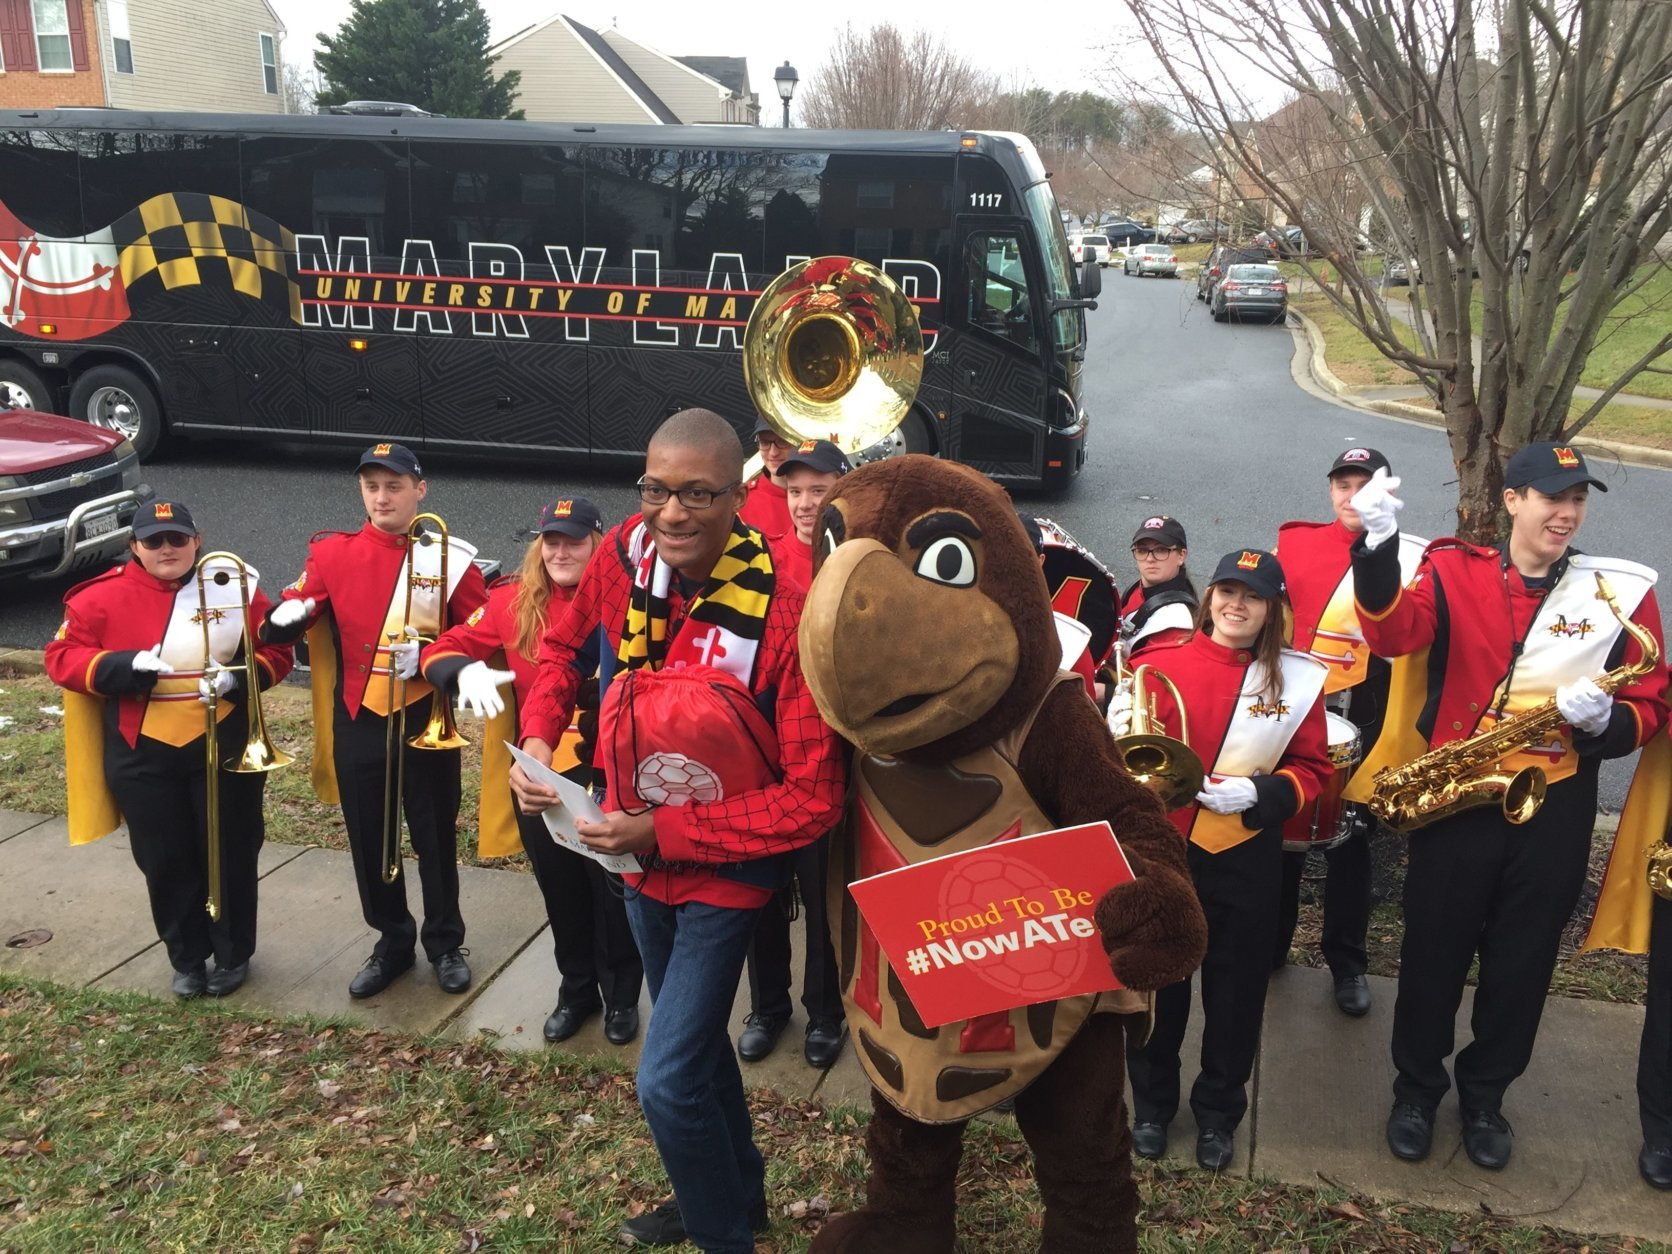 Members of the UMD marching band along with the university's mascot were among those to congratulate Jones on his acceptance to the school. (WTOP/John Domen)